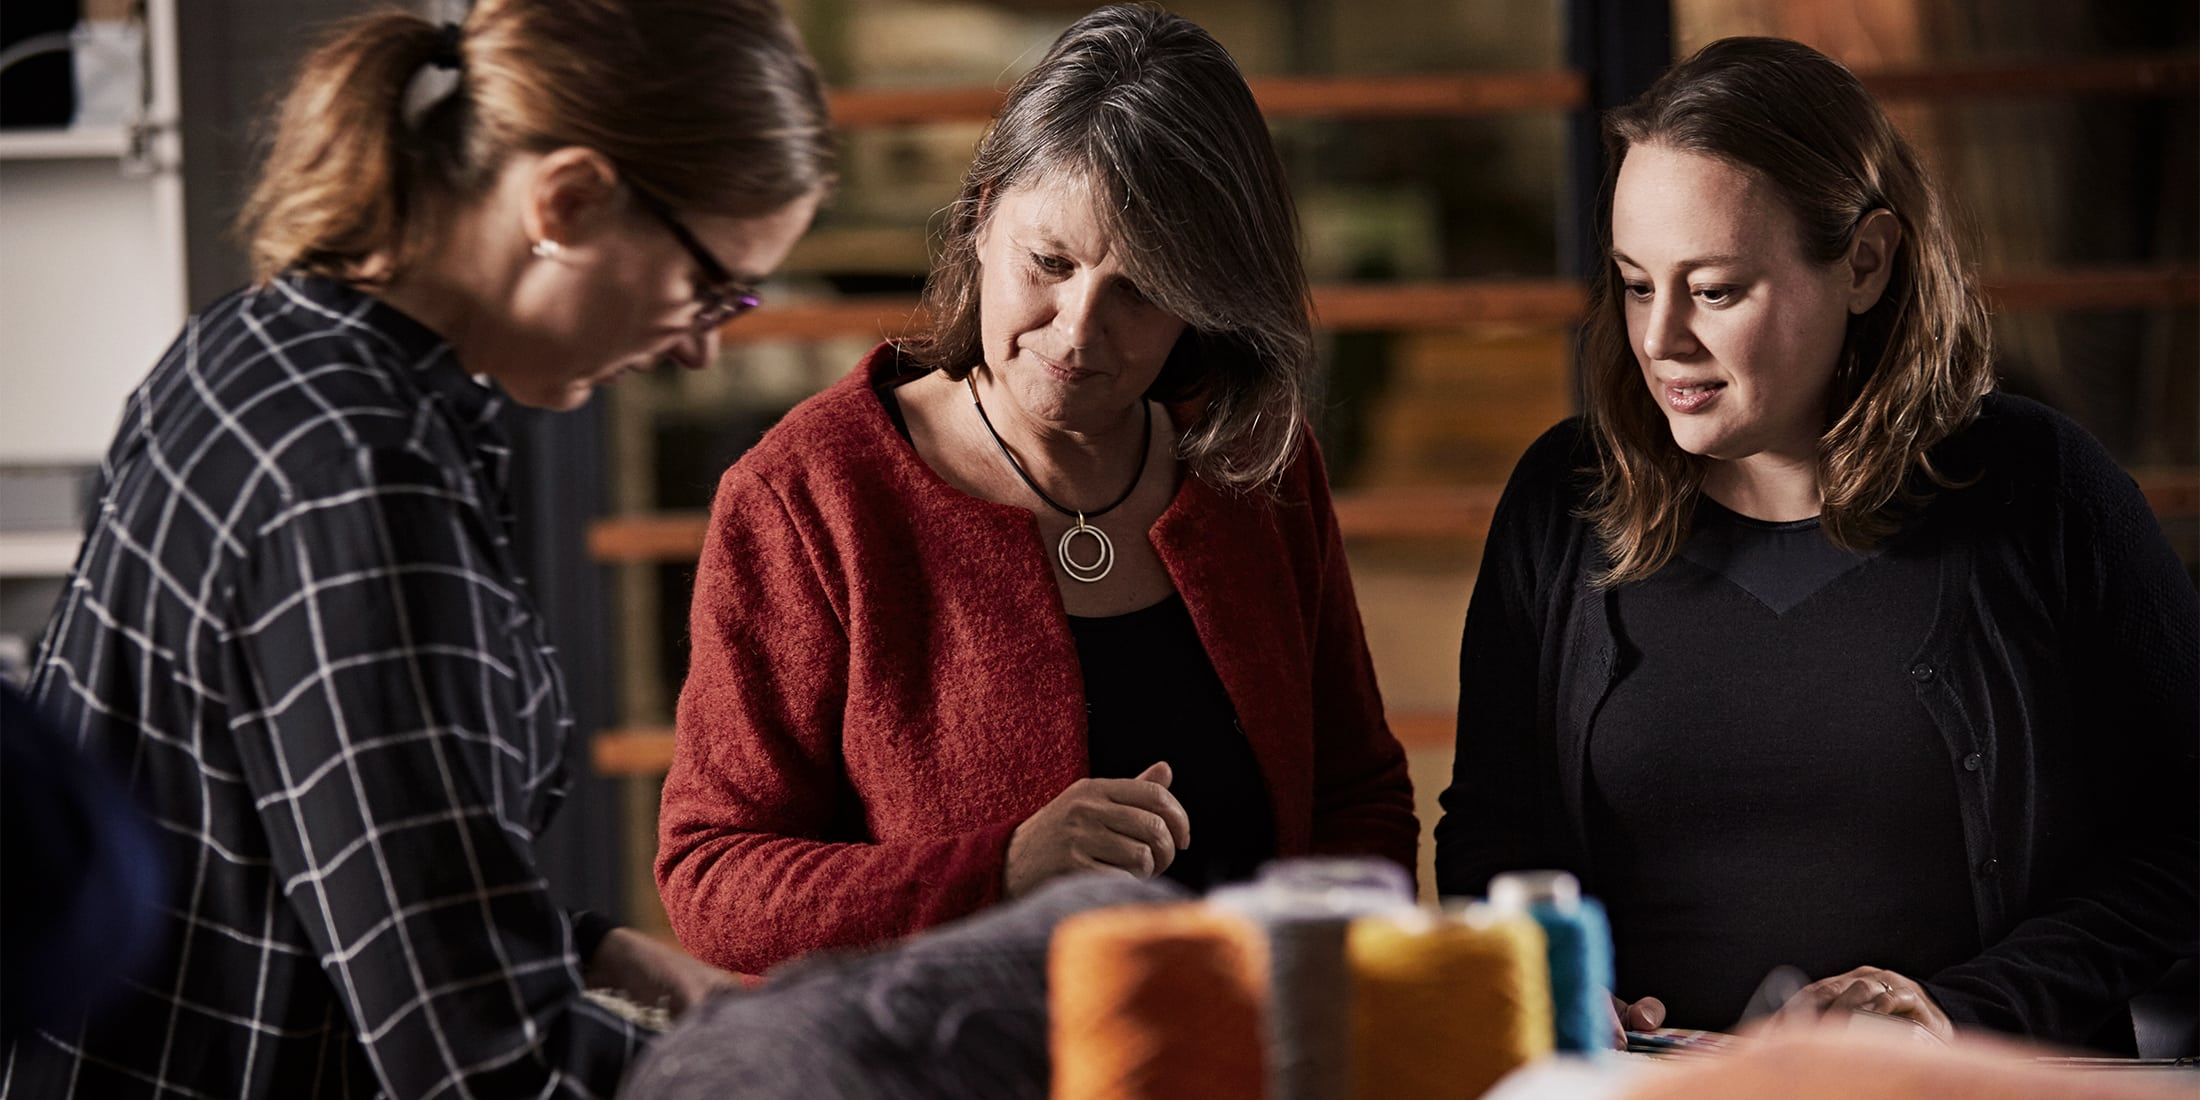 Meet our team of specialist in carpets at Dansk Wilton.